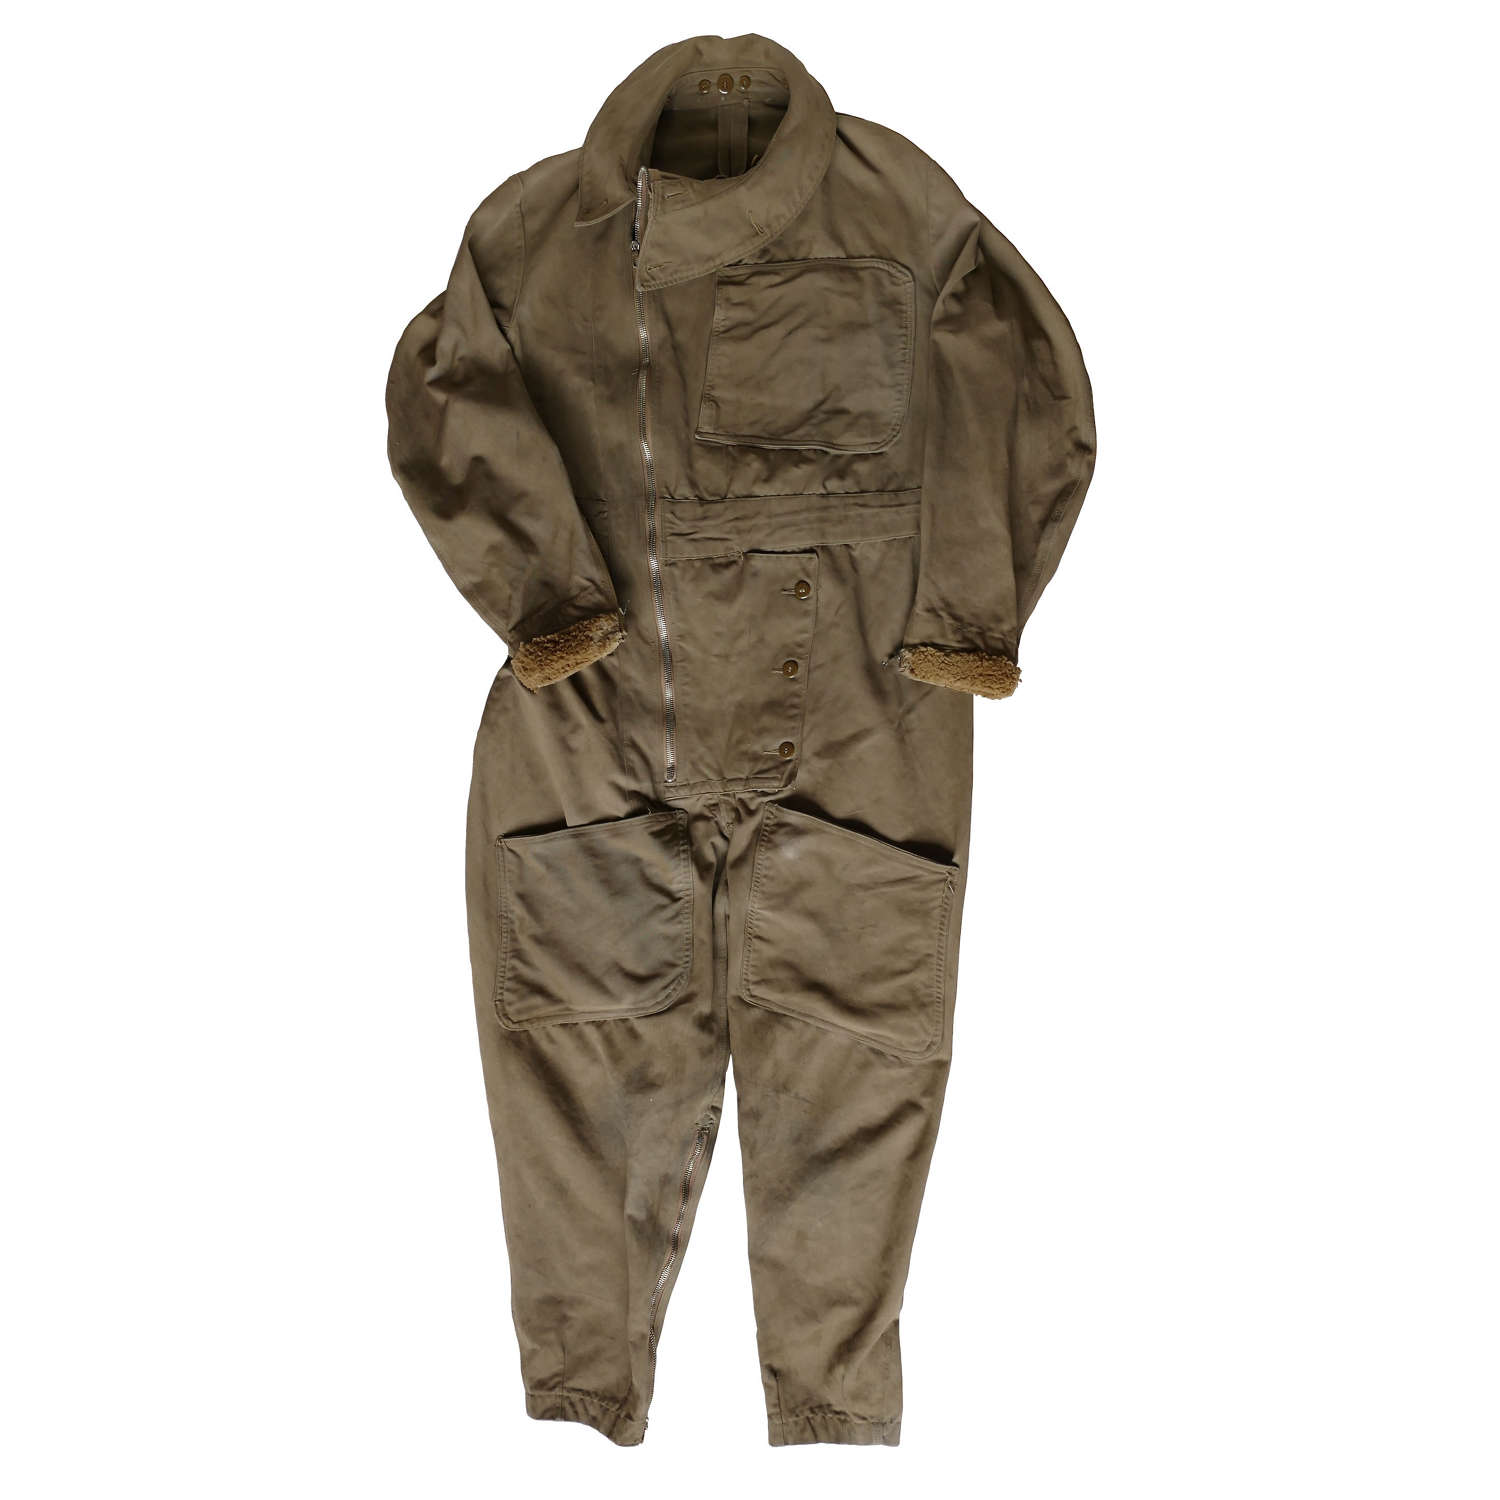 RAF 1940 pattern Sidcot flying suit